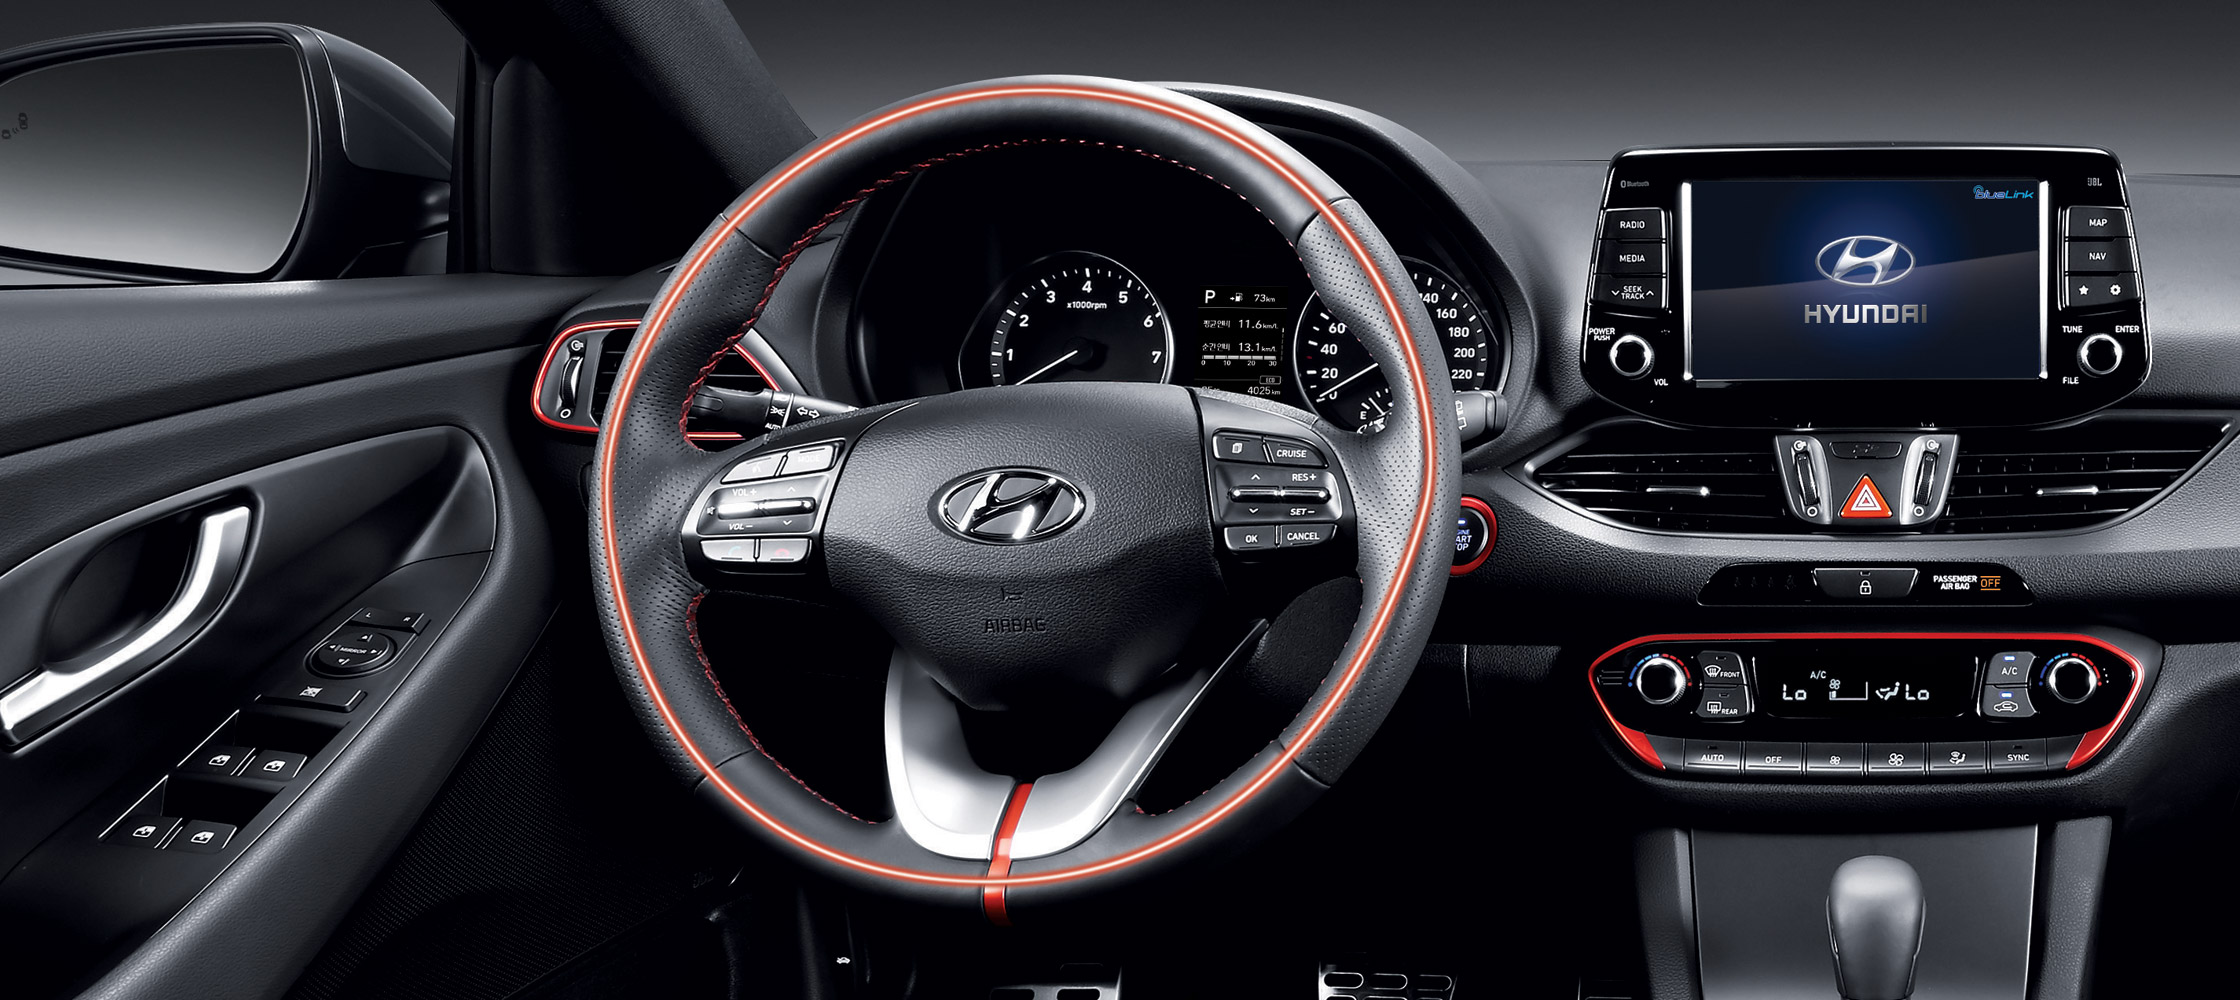 Interior of the Hyundia 2018 Elantra GT's steering wheel with standard heated front seats and steering wheel